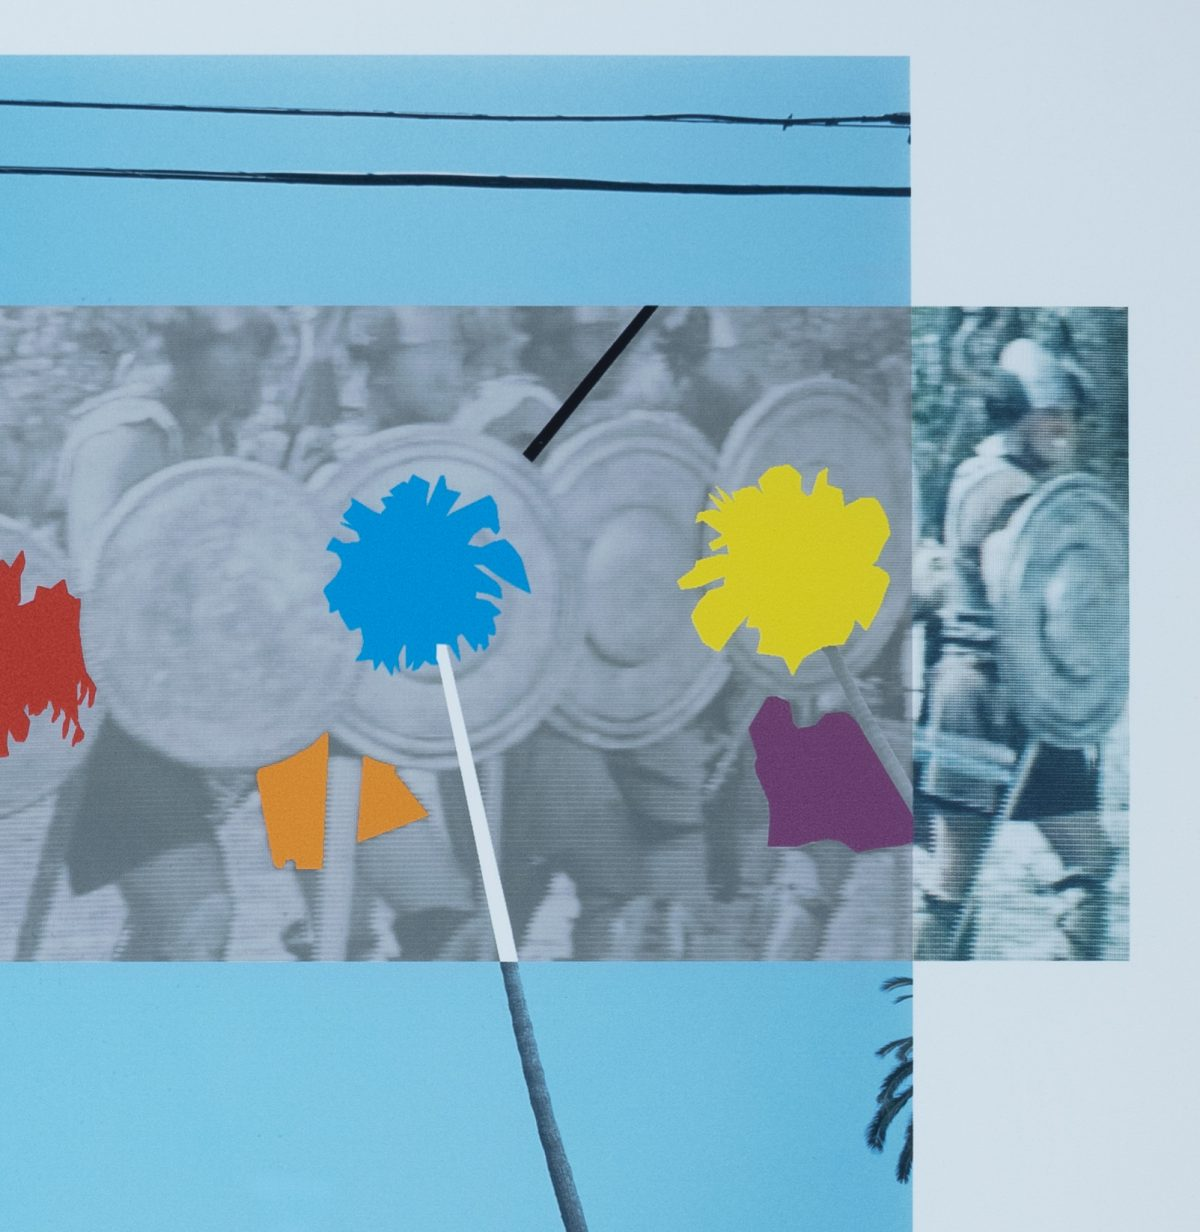 John Baldessari - Palm Trees and Building (from the Overlap Series)